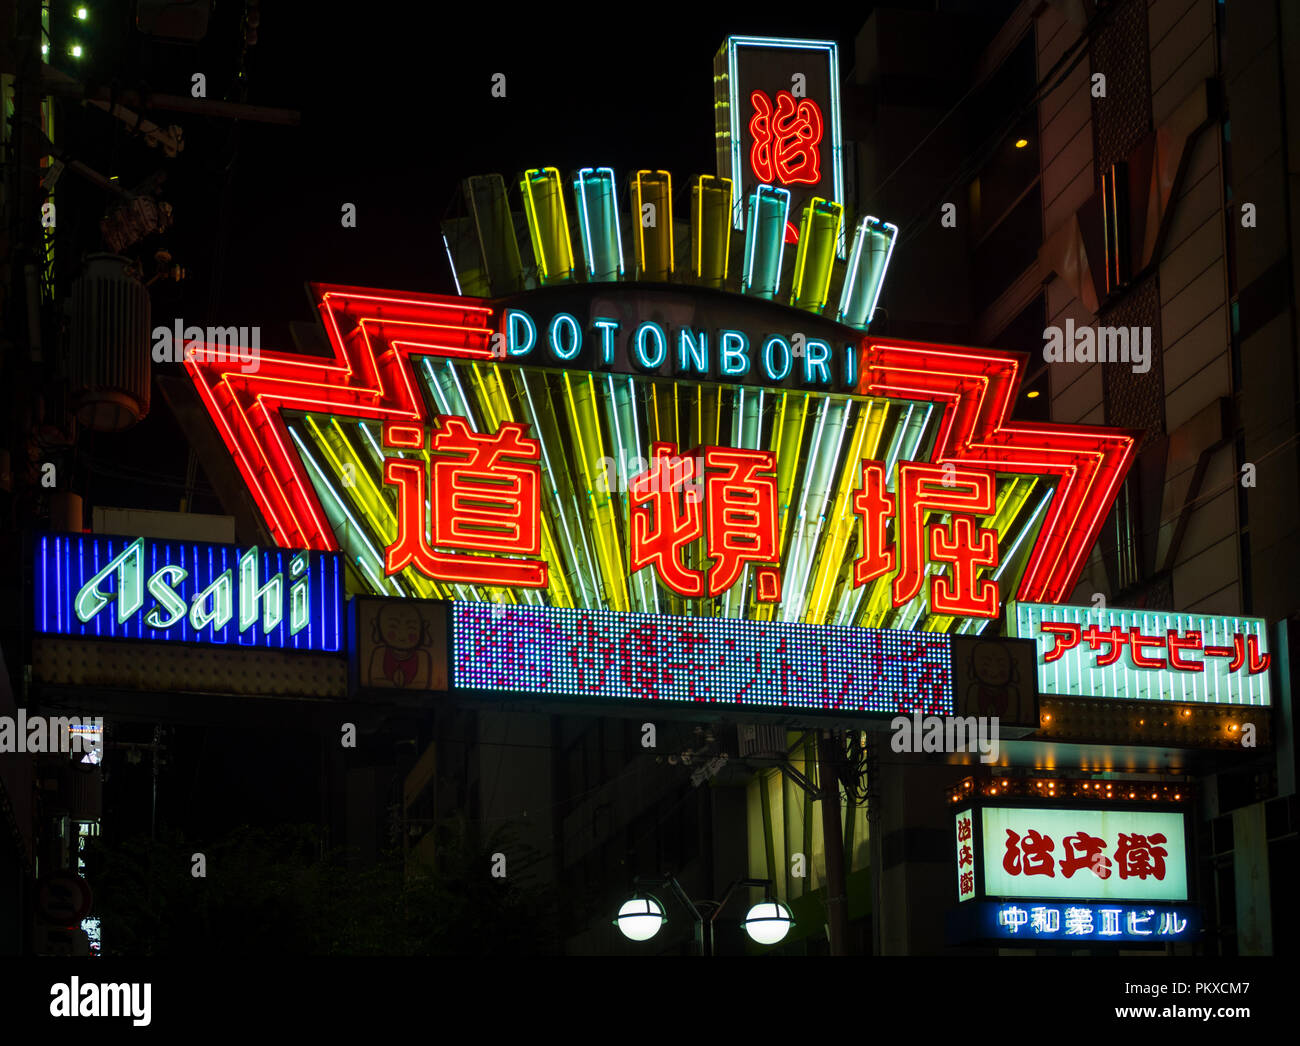 A neon sign in the Dotonbori district of Osaka, Japan. - Stock Image